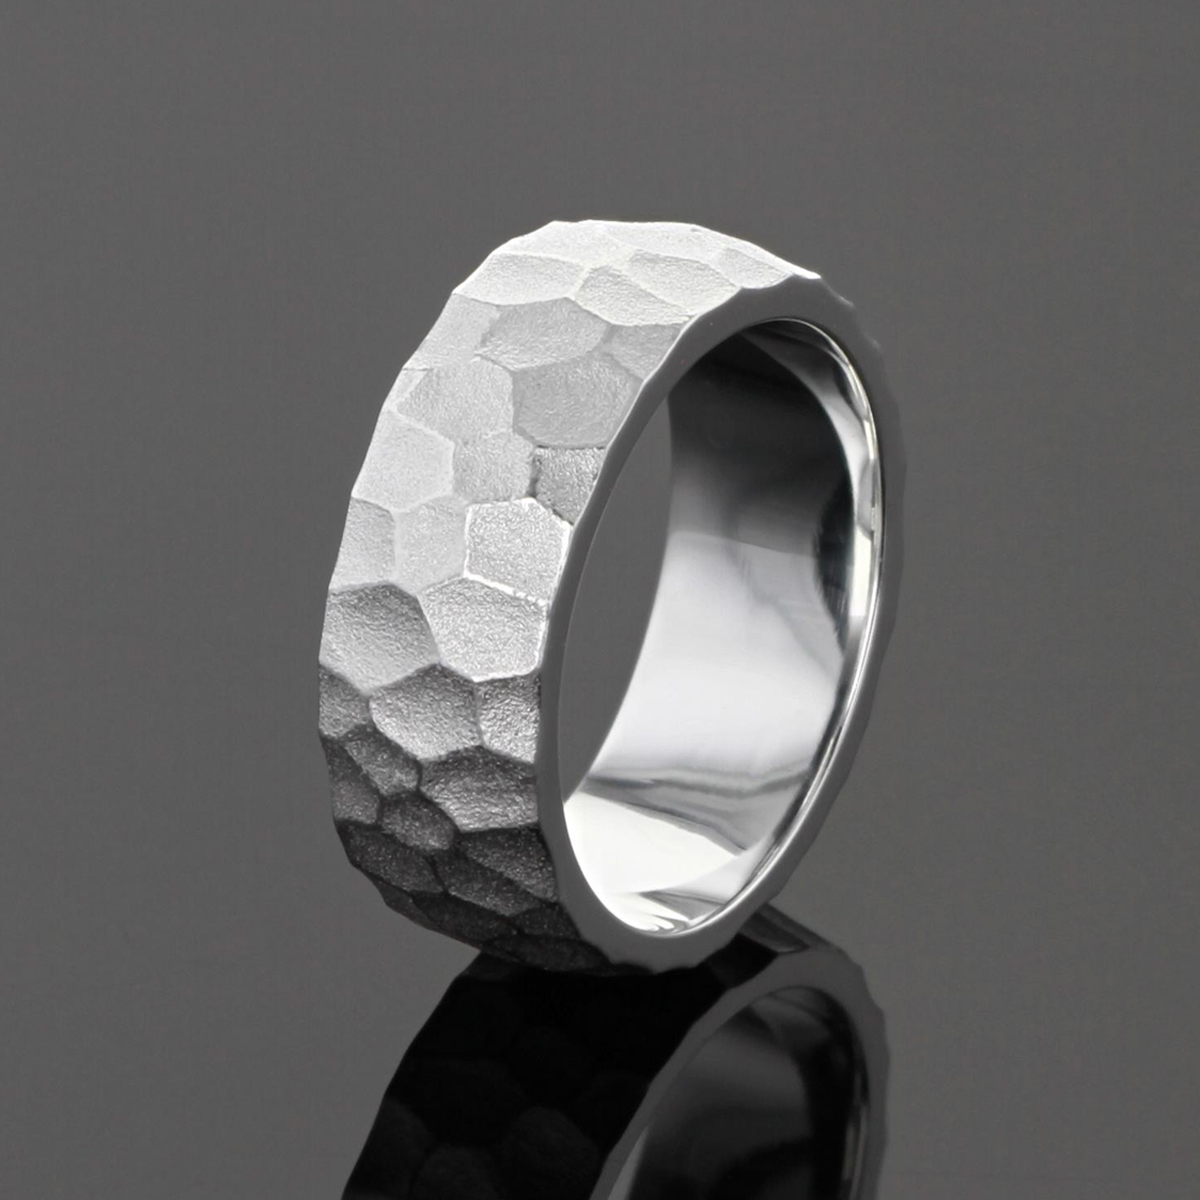 Solid sterling silver jewellery